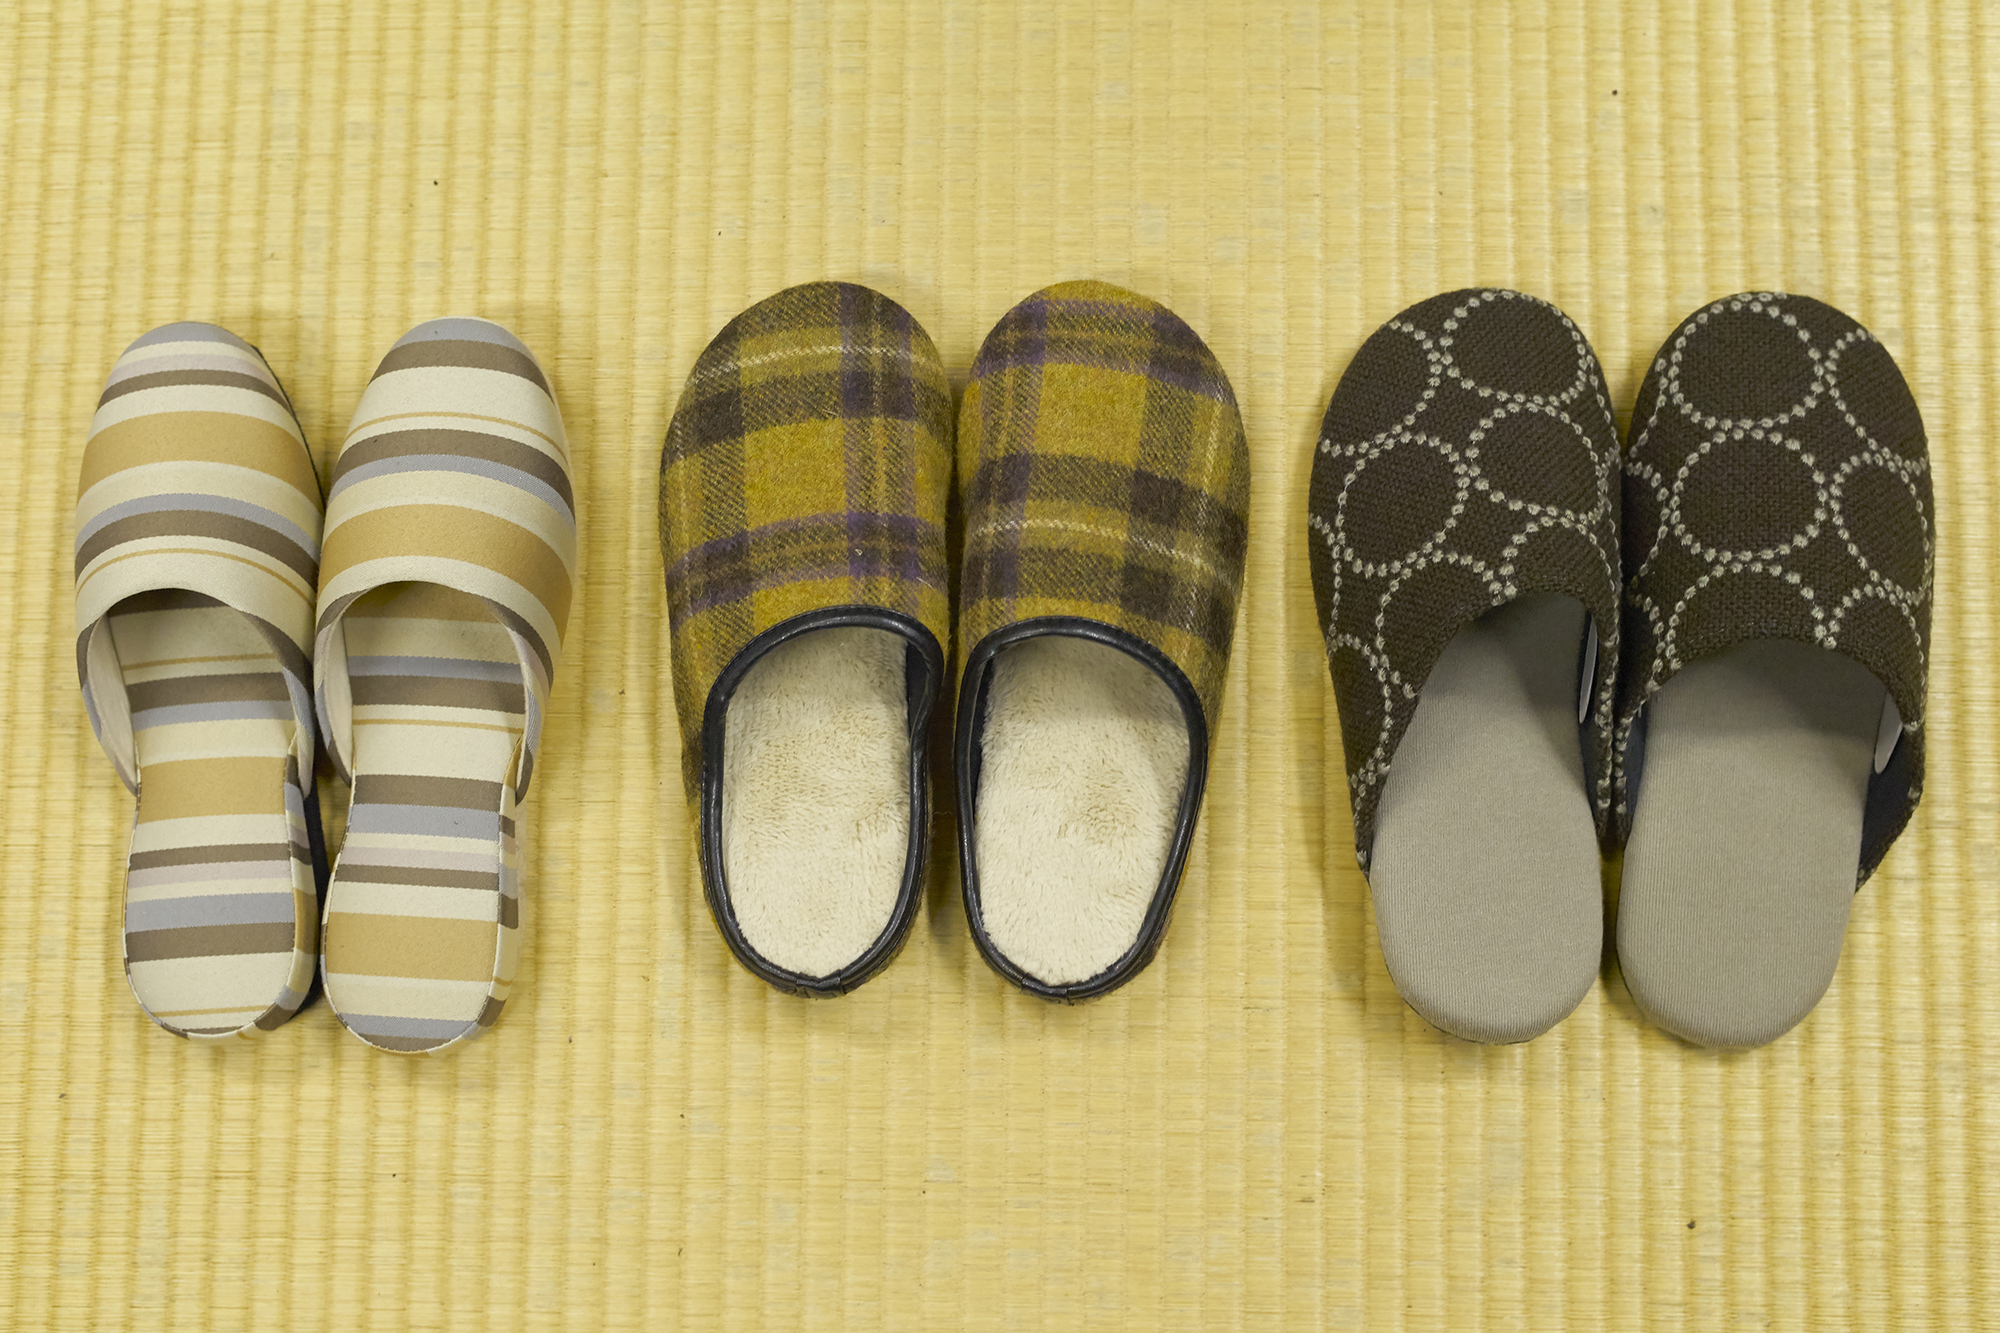 Slippers Became More of Us to Relax than for Guests